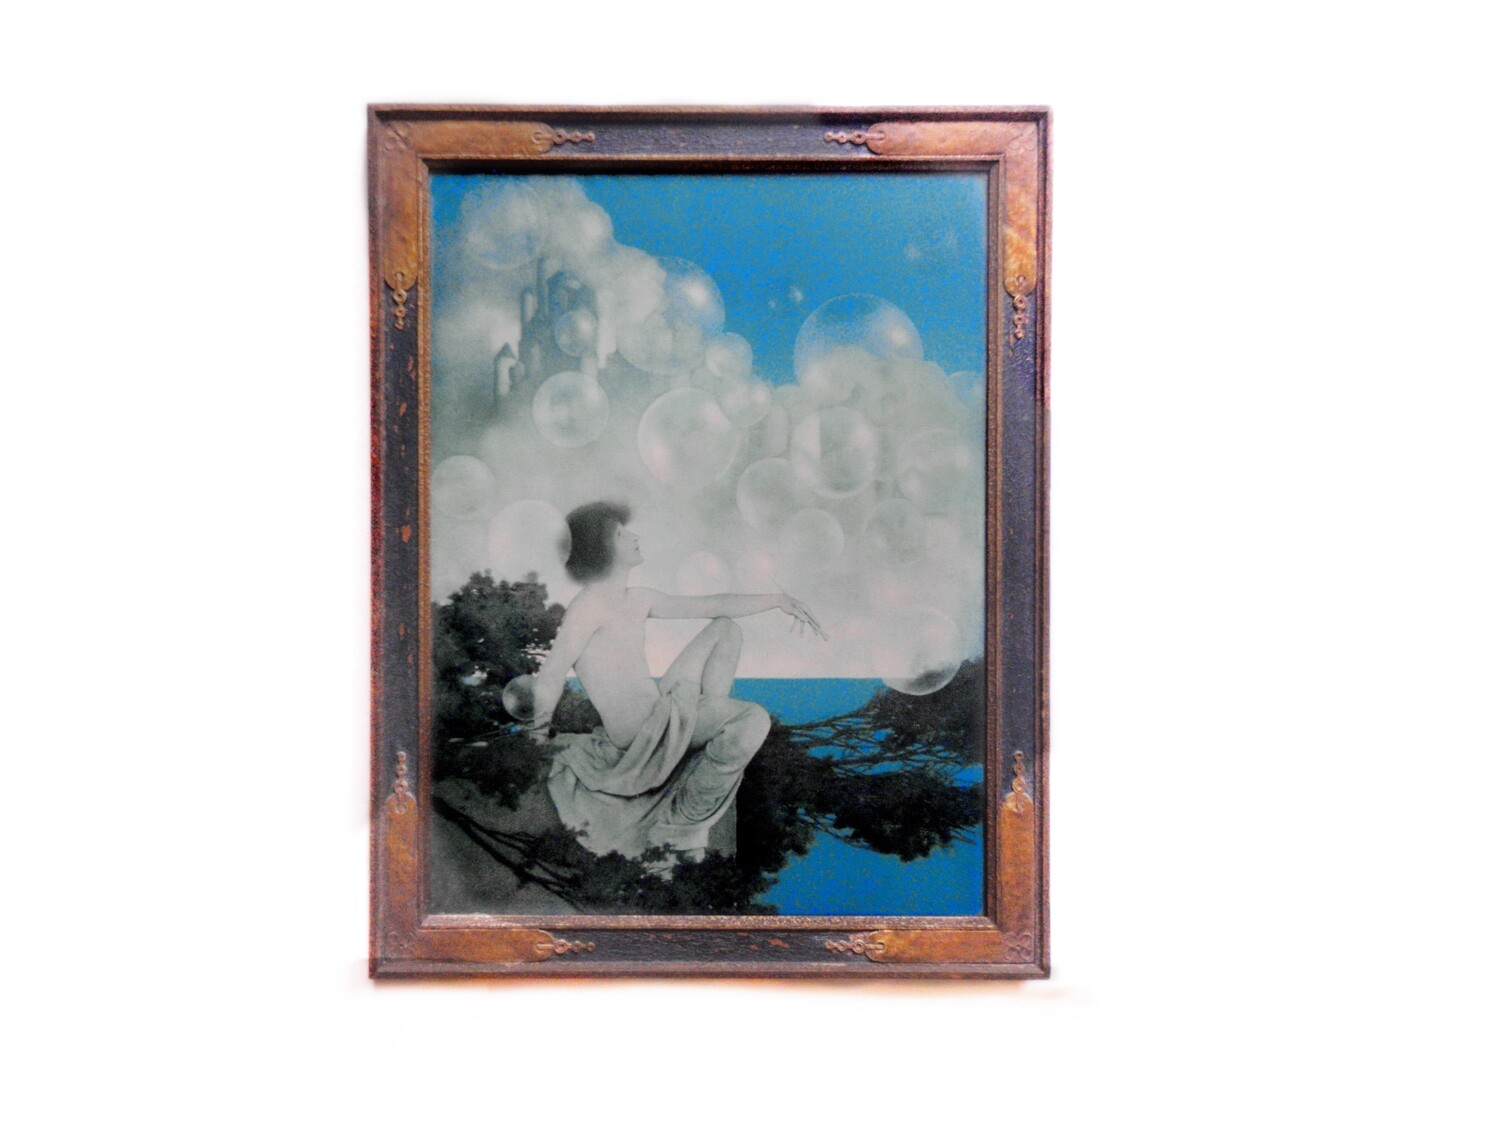 1920s Maxfield Parrish Air Castles in Original Art Deco Frame Fantasy Art